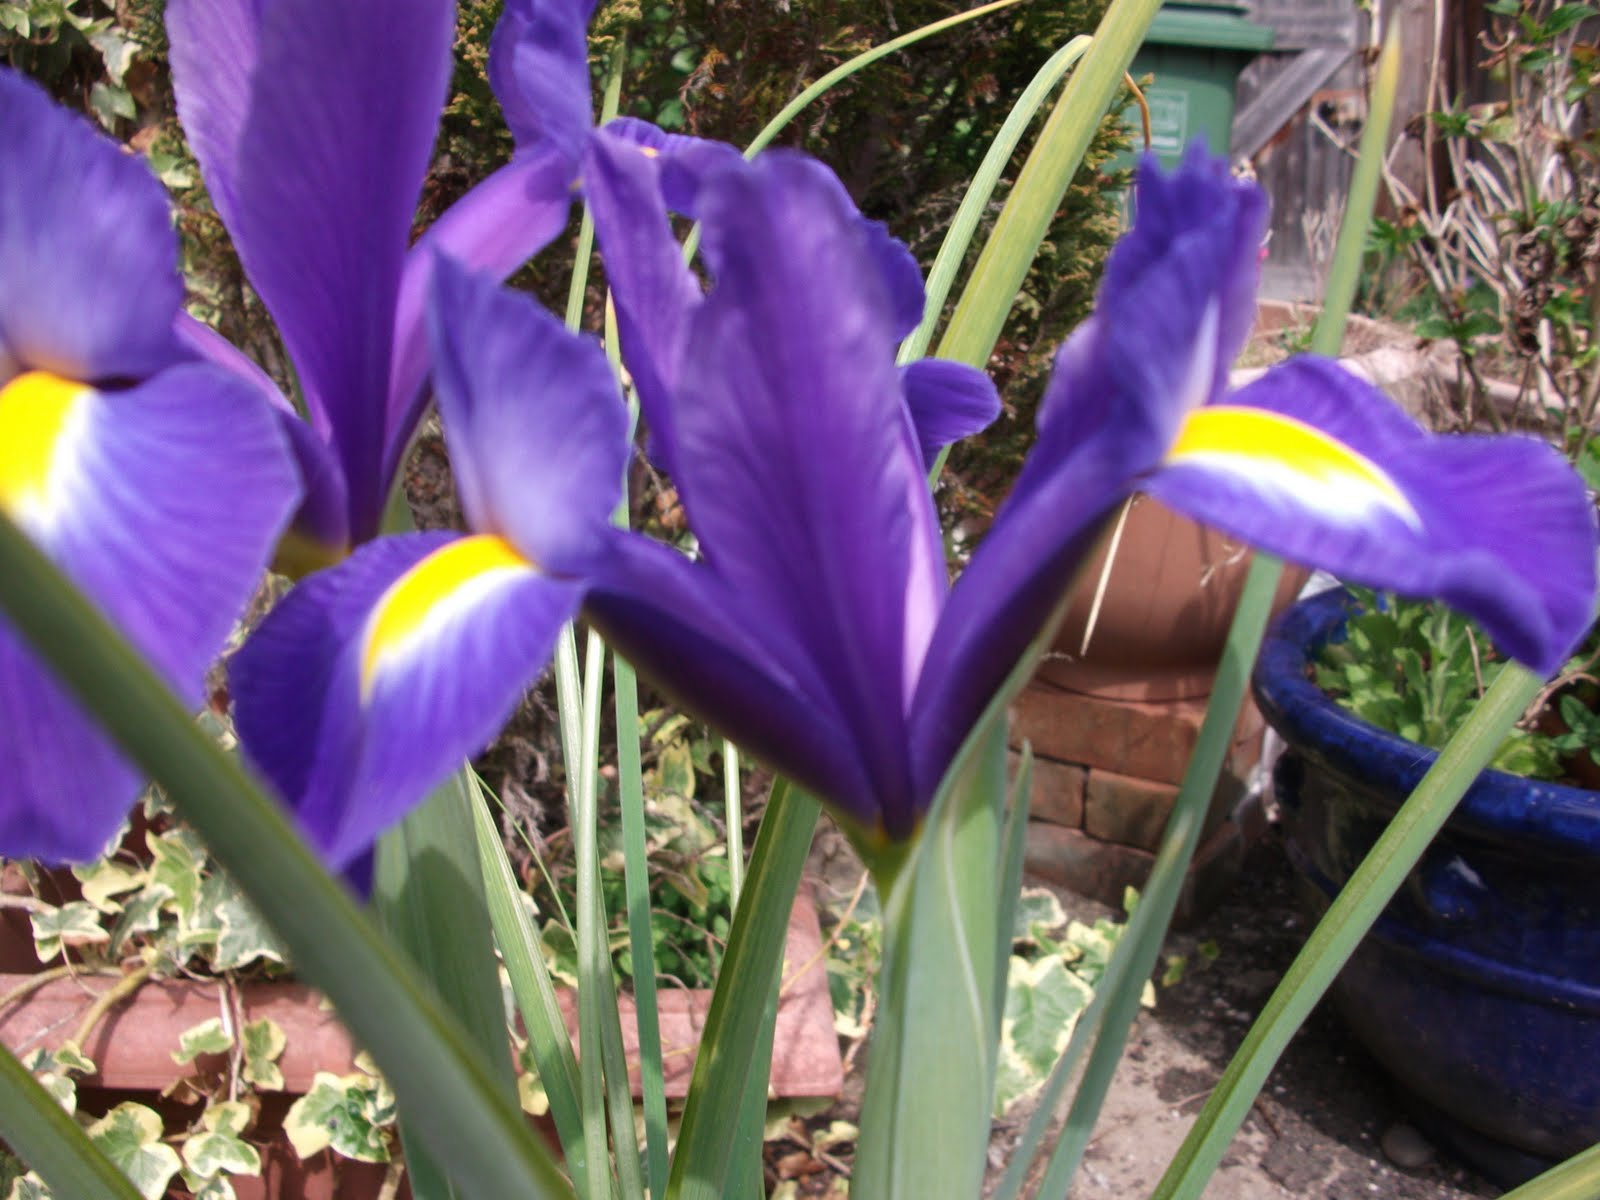 Clan of the entangled thicket 1734 iris my visit to the parthenon gallery in the british museum encouraged me to explore iris and as the flower that is her namesake has just burst into flower izmirmasajfo